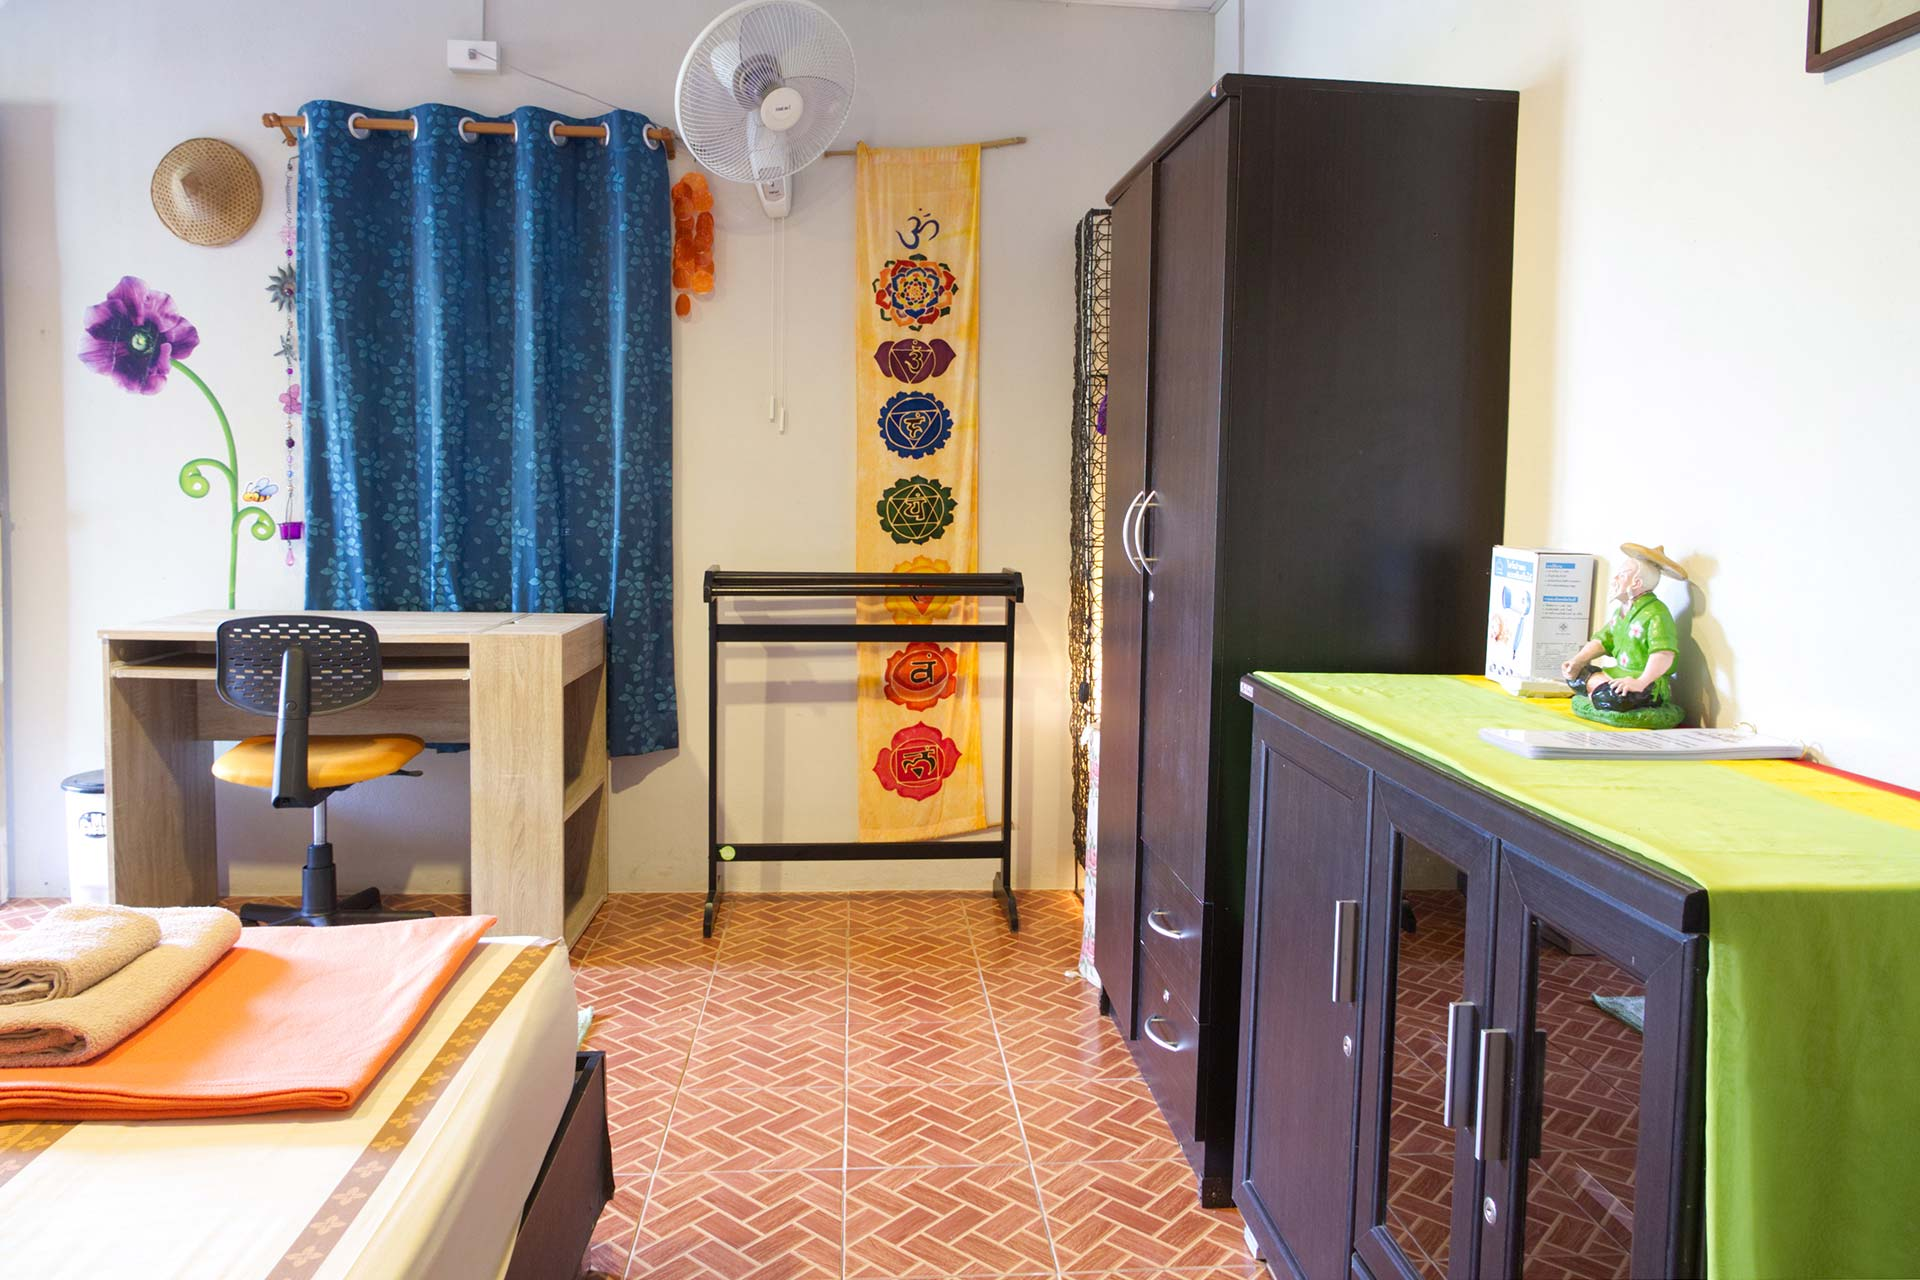 Deluxe Room at Yoga Guesthouse Thailand